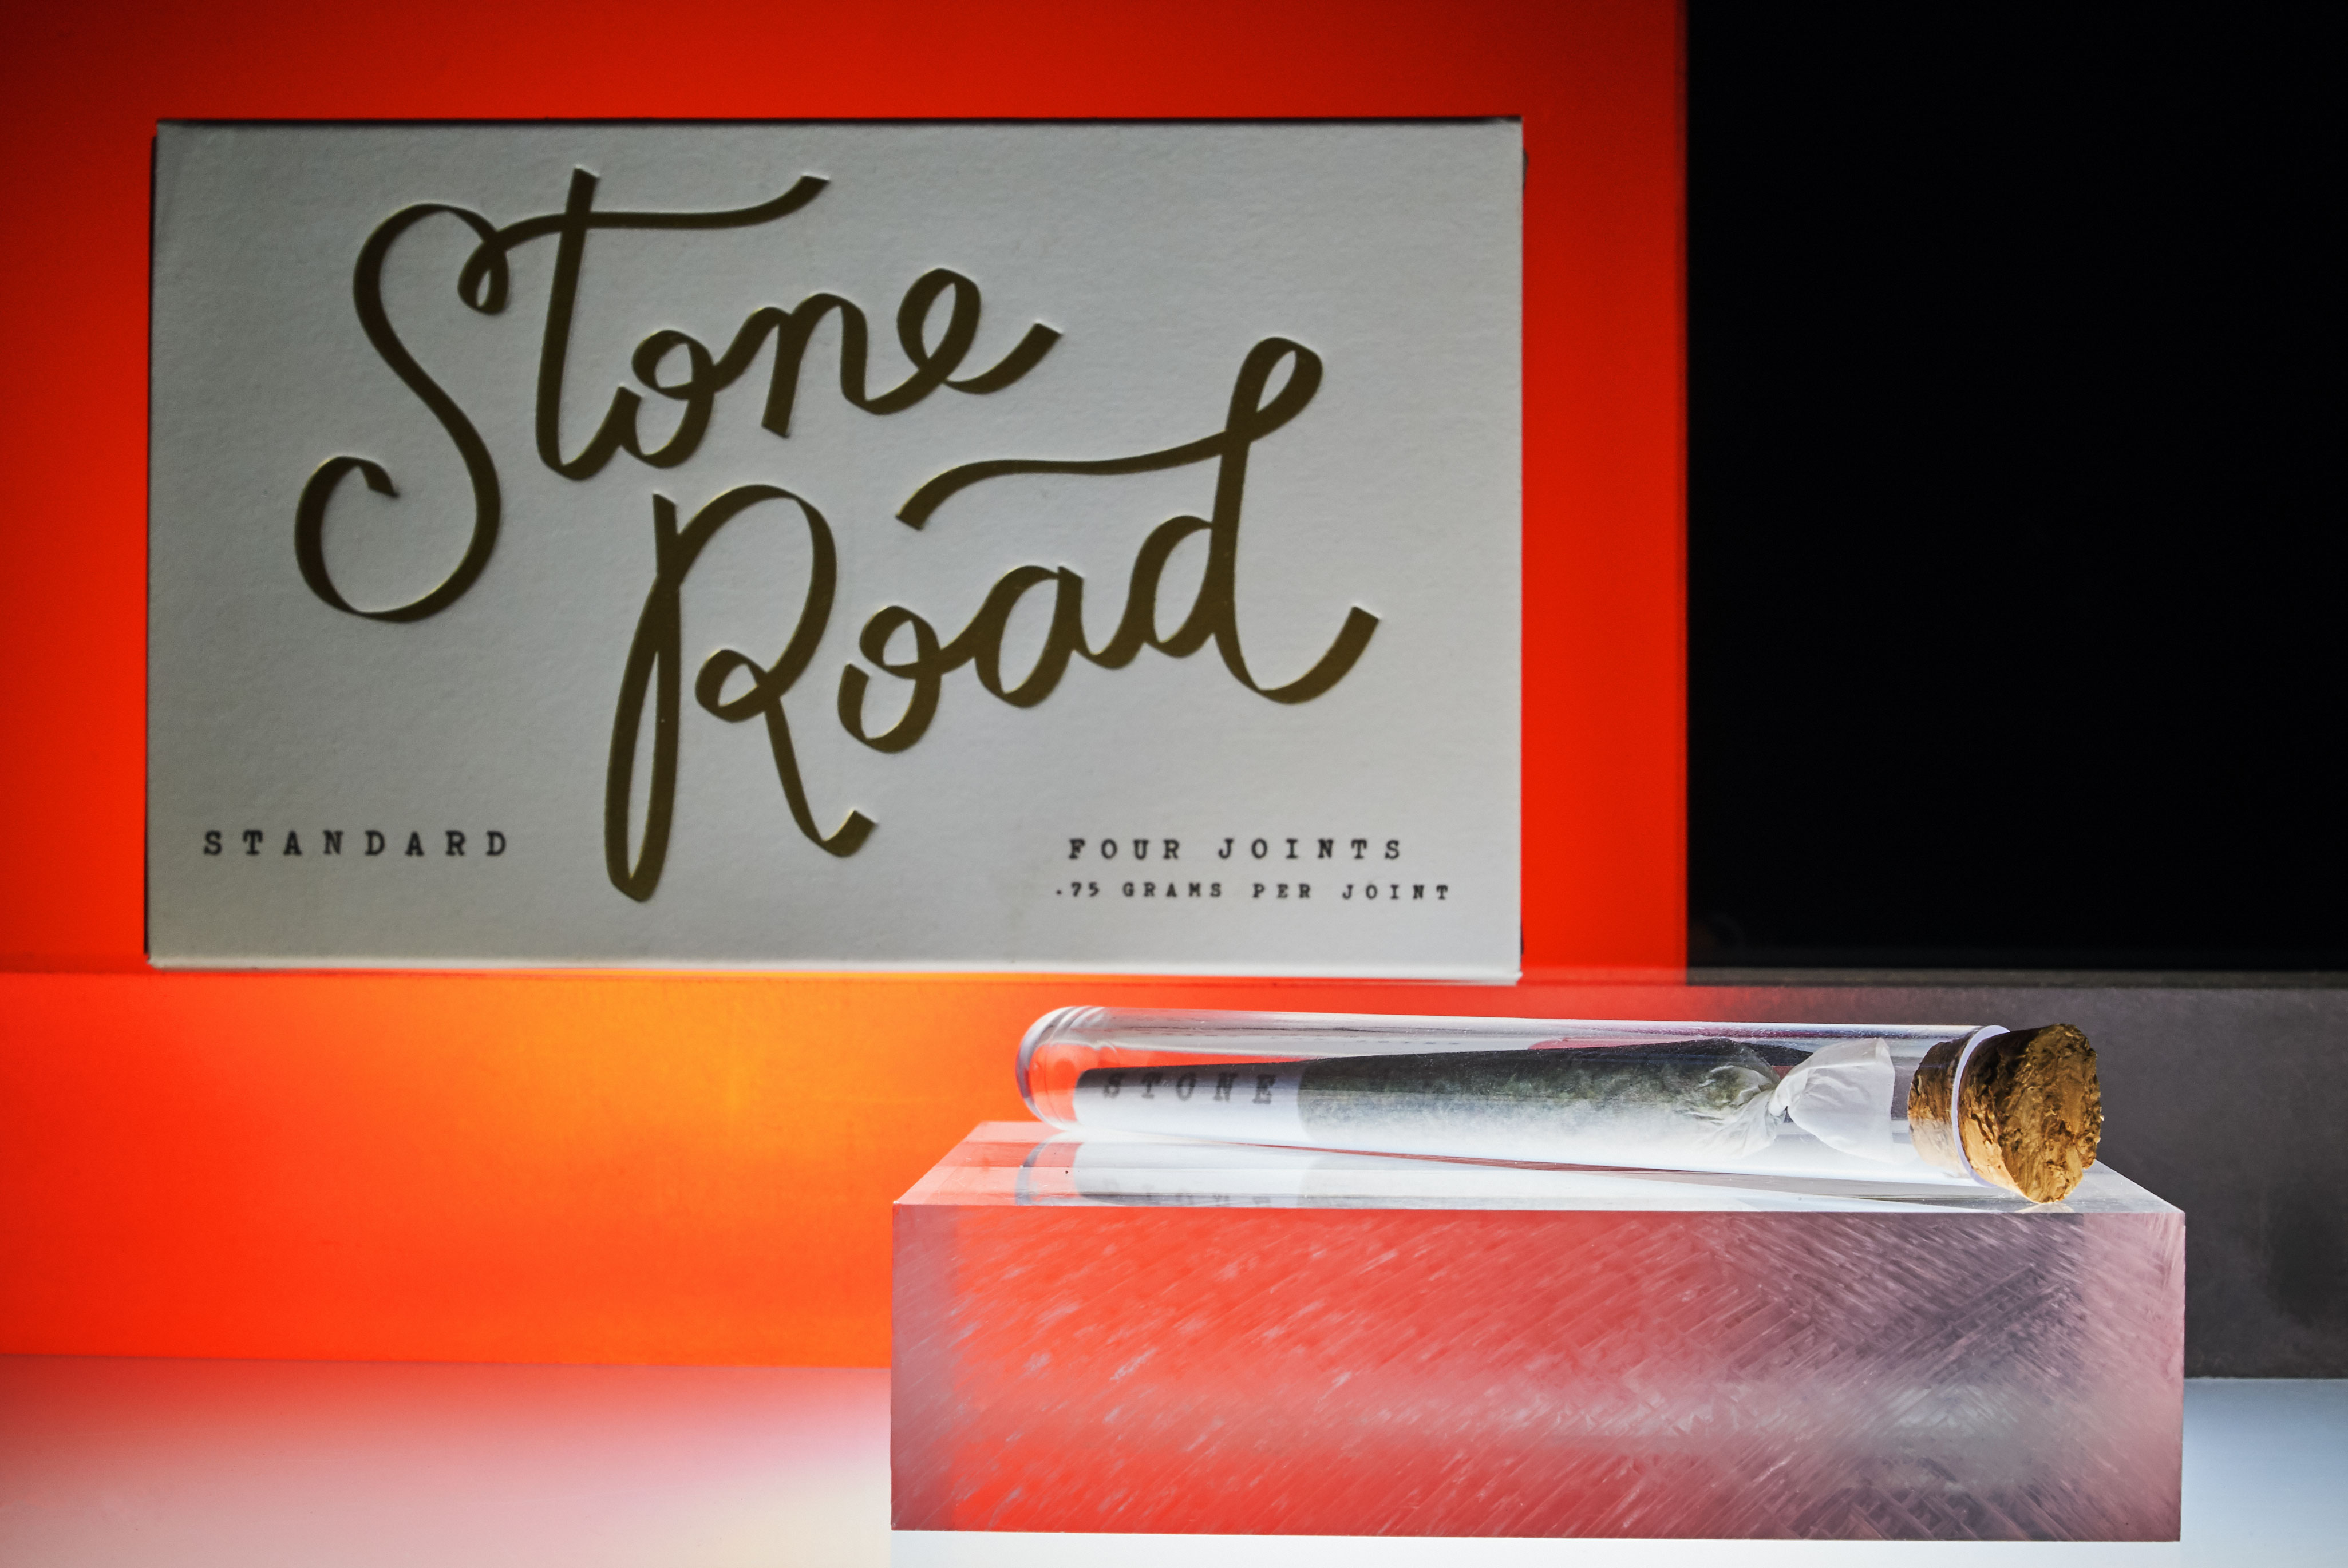 stoned road